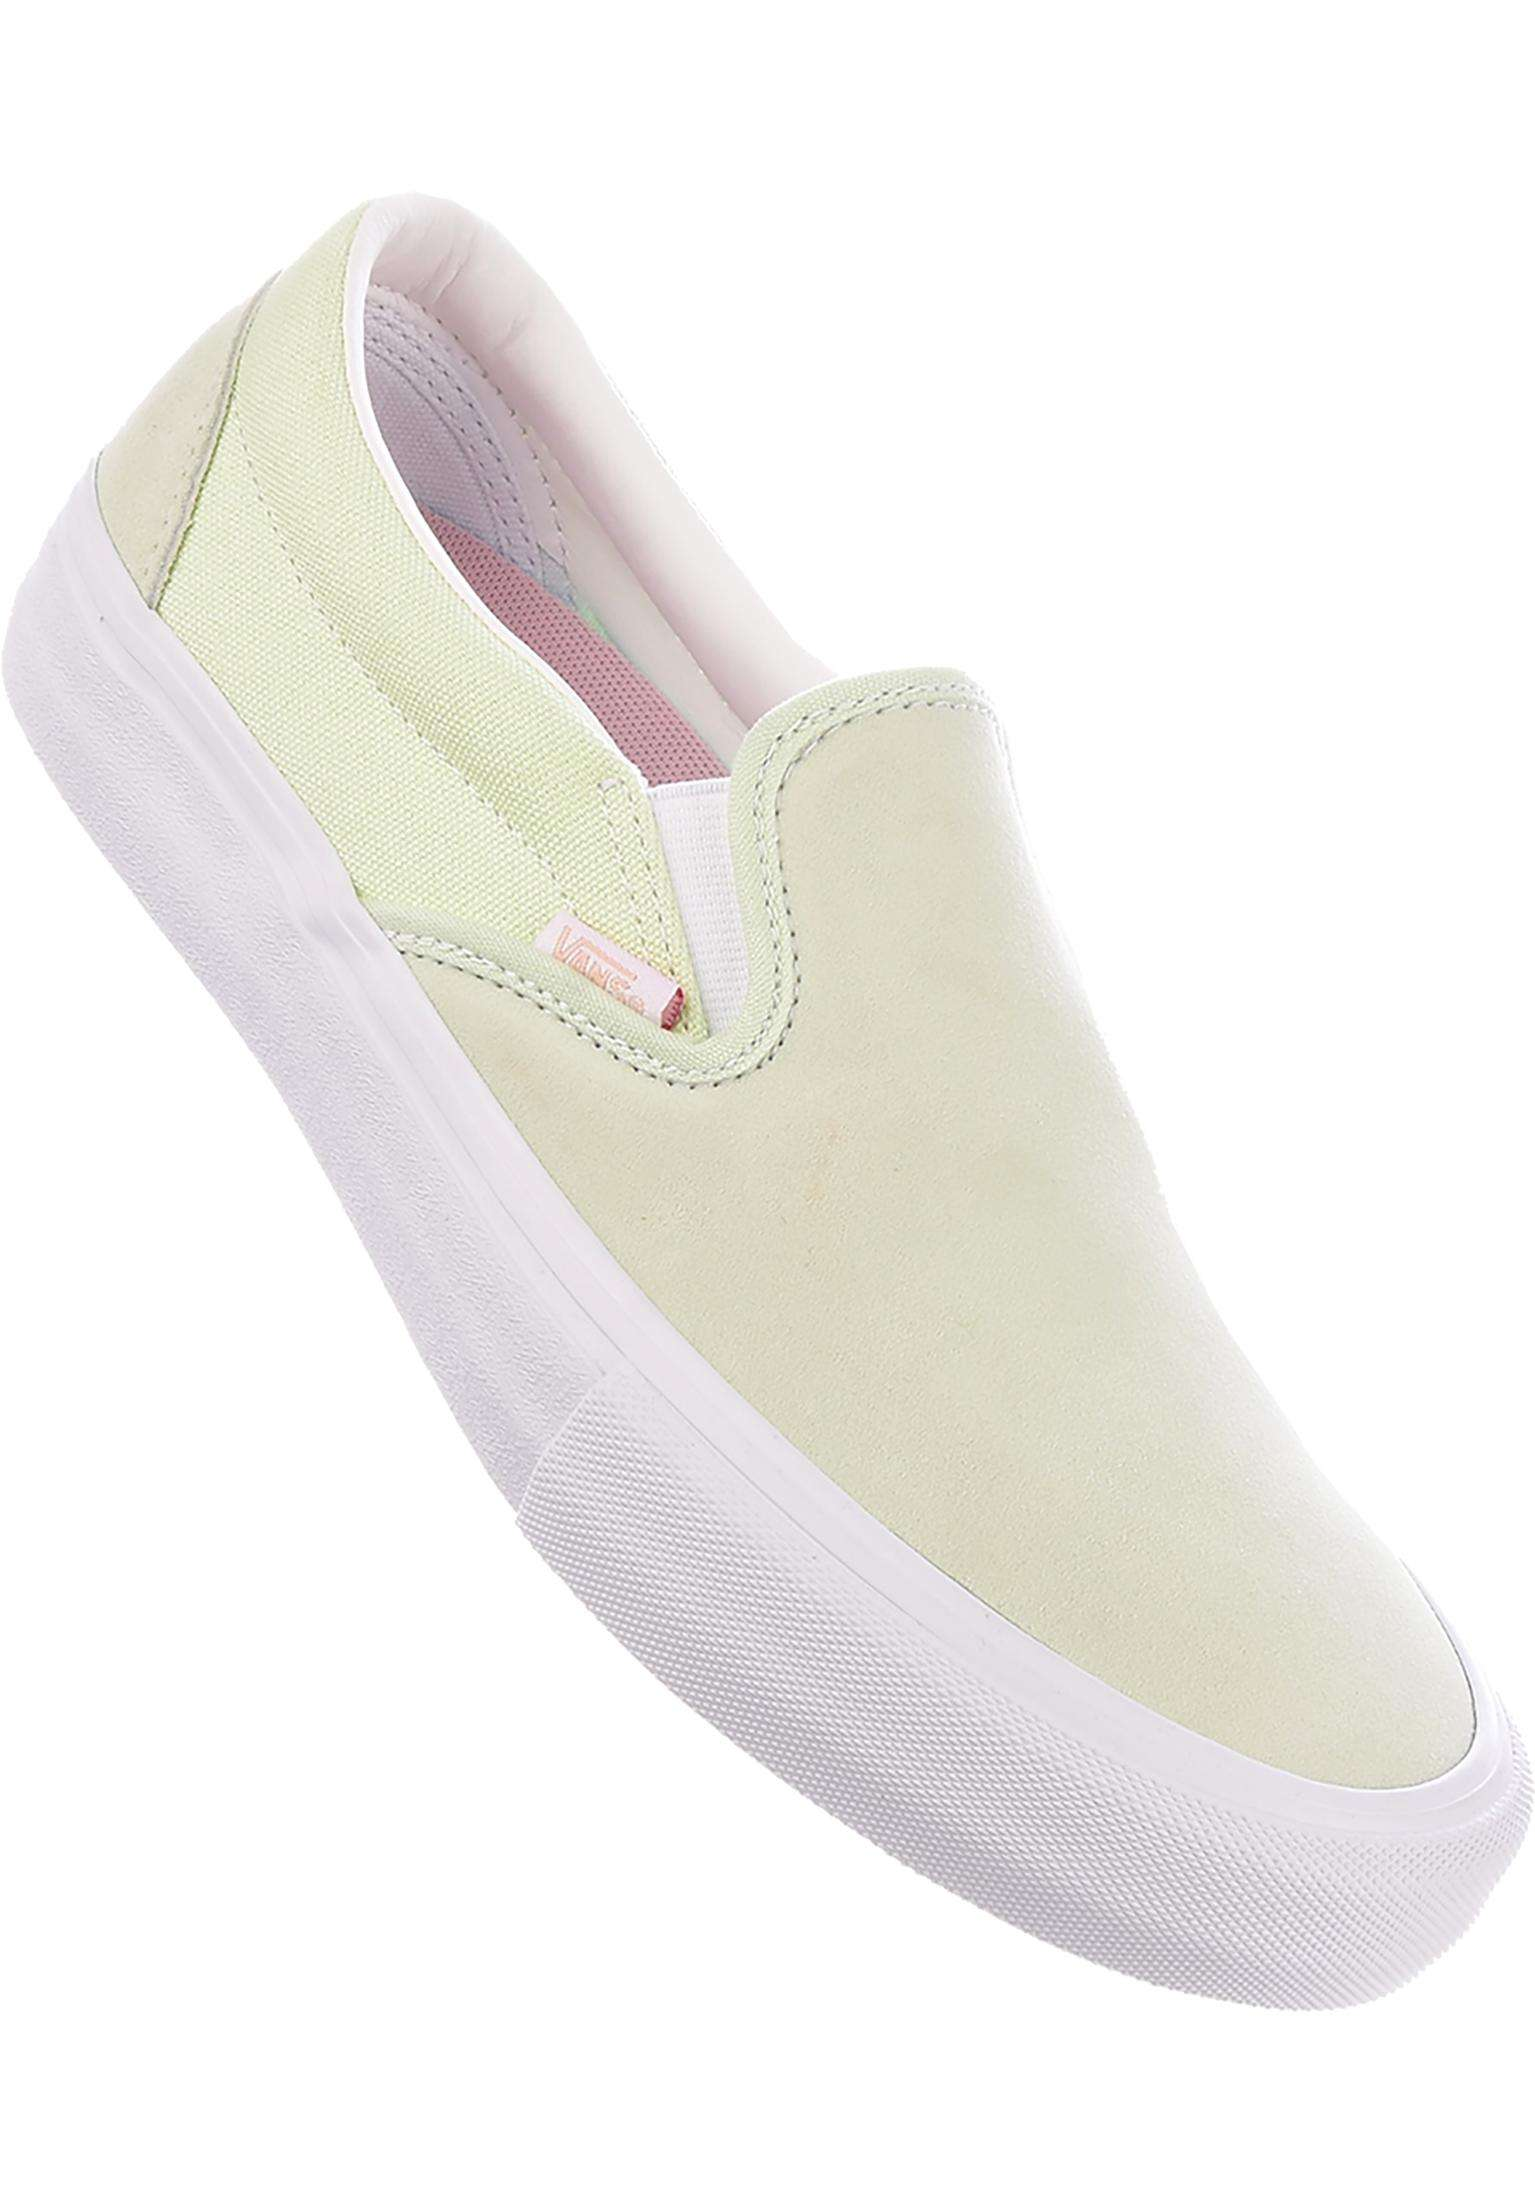 05472993a1 Slip-On Pro Vans All Shoes in ambrosia-white for Men